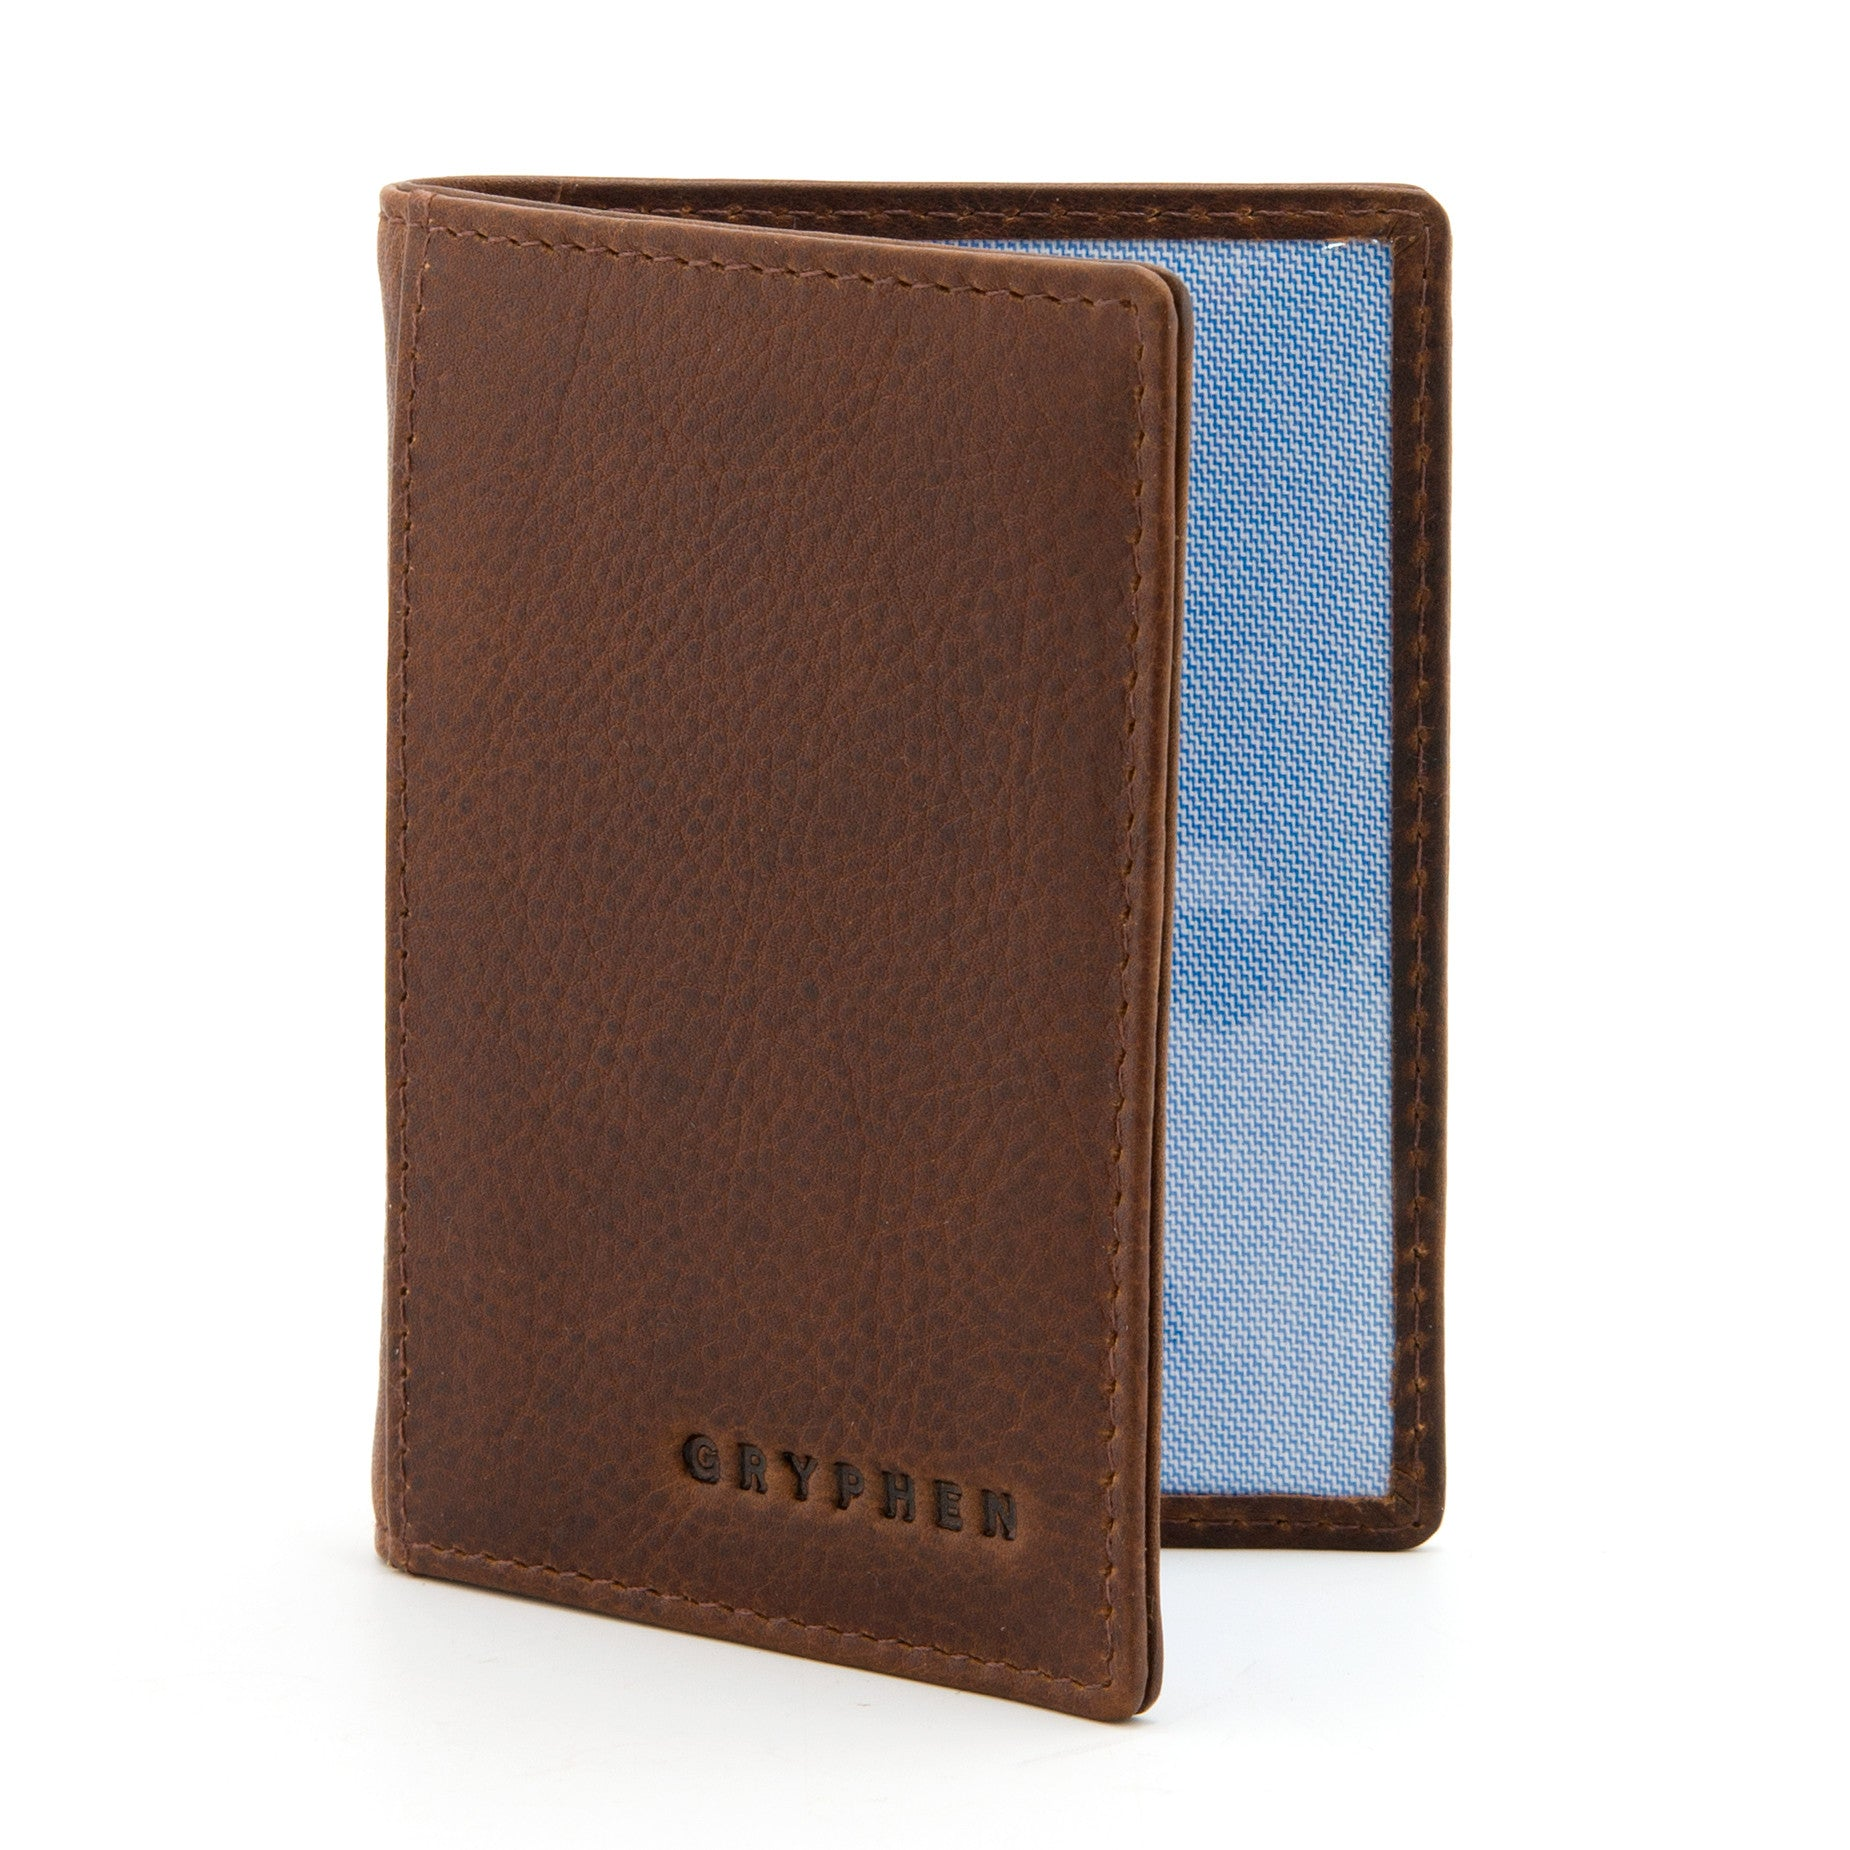 Navy Leather Bus Train Pass Oyster Travel Card Holder With Zip Travel Accessory Passport & ID Holders